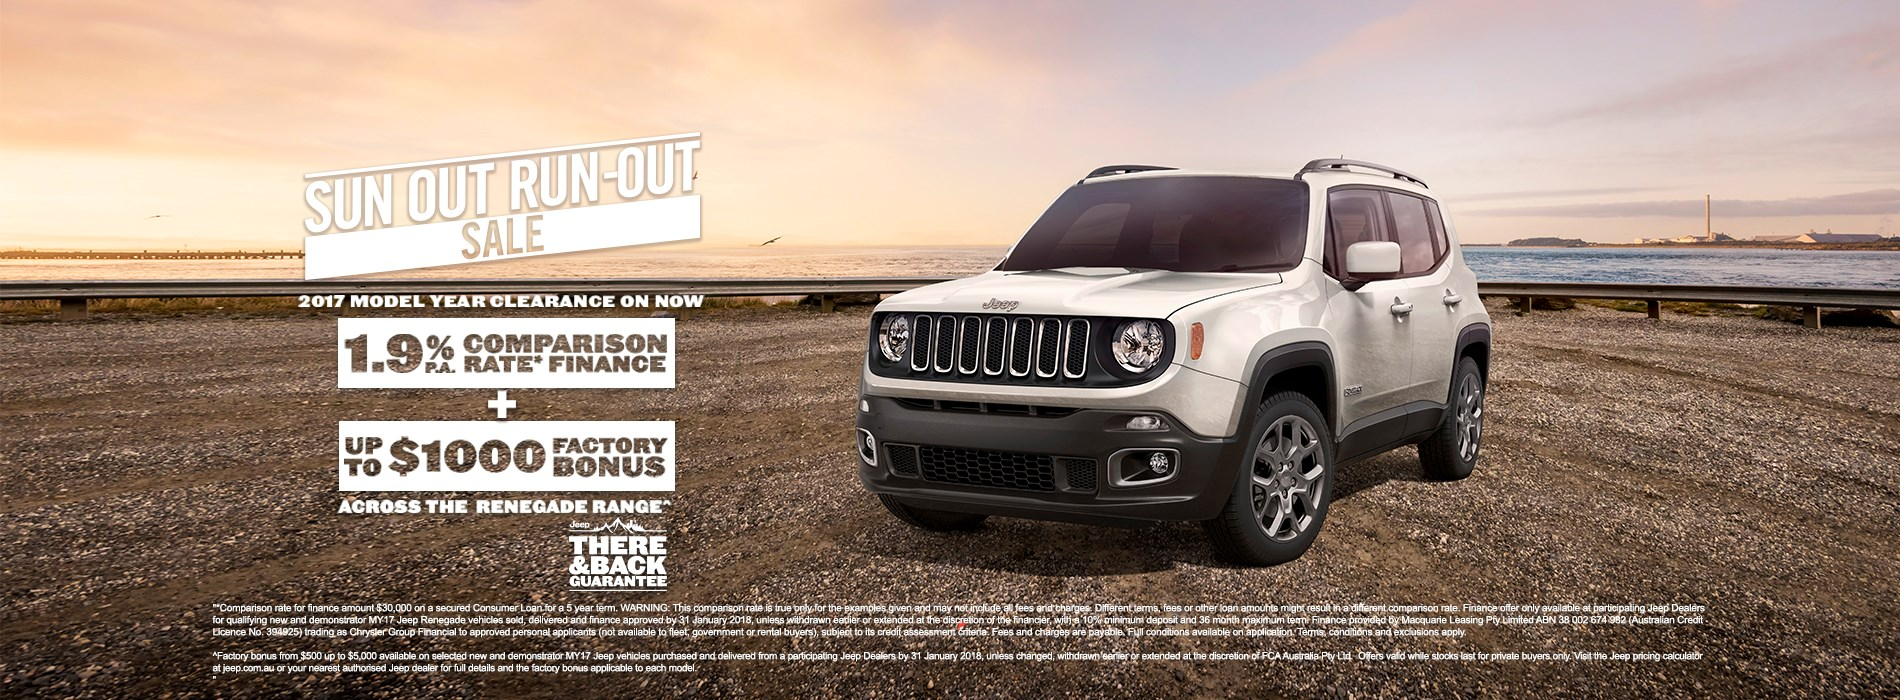 Jeep Renegade MY17 Run-out sale